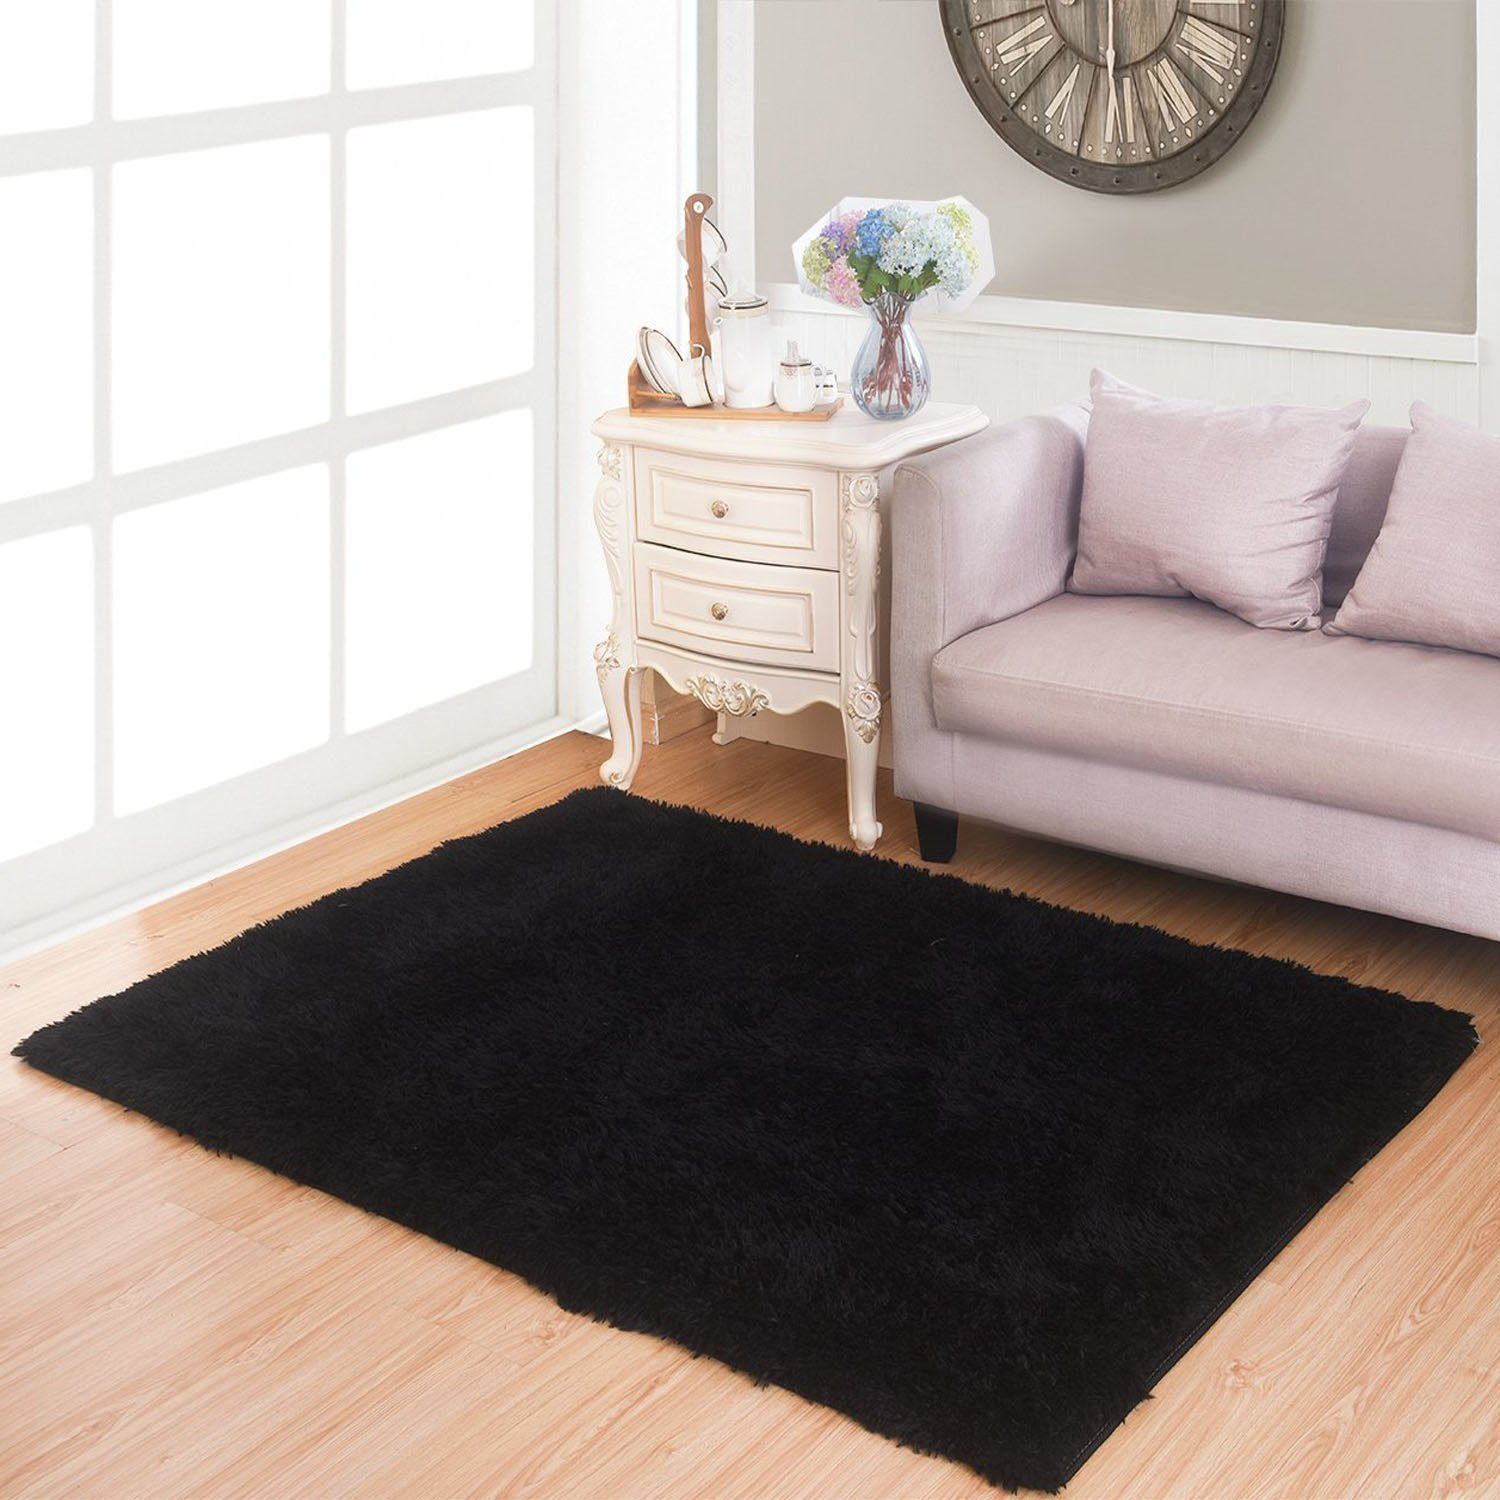 MBIGM Living Room Bedroom Rugs, Ultra Soft Modern Area Rugs Thick Shaggy  Play Nursery Rug Non-Slip Carpet Pad Living Room Bedroom 4 Feet 5.2 Feet,  ...